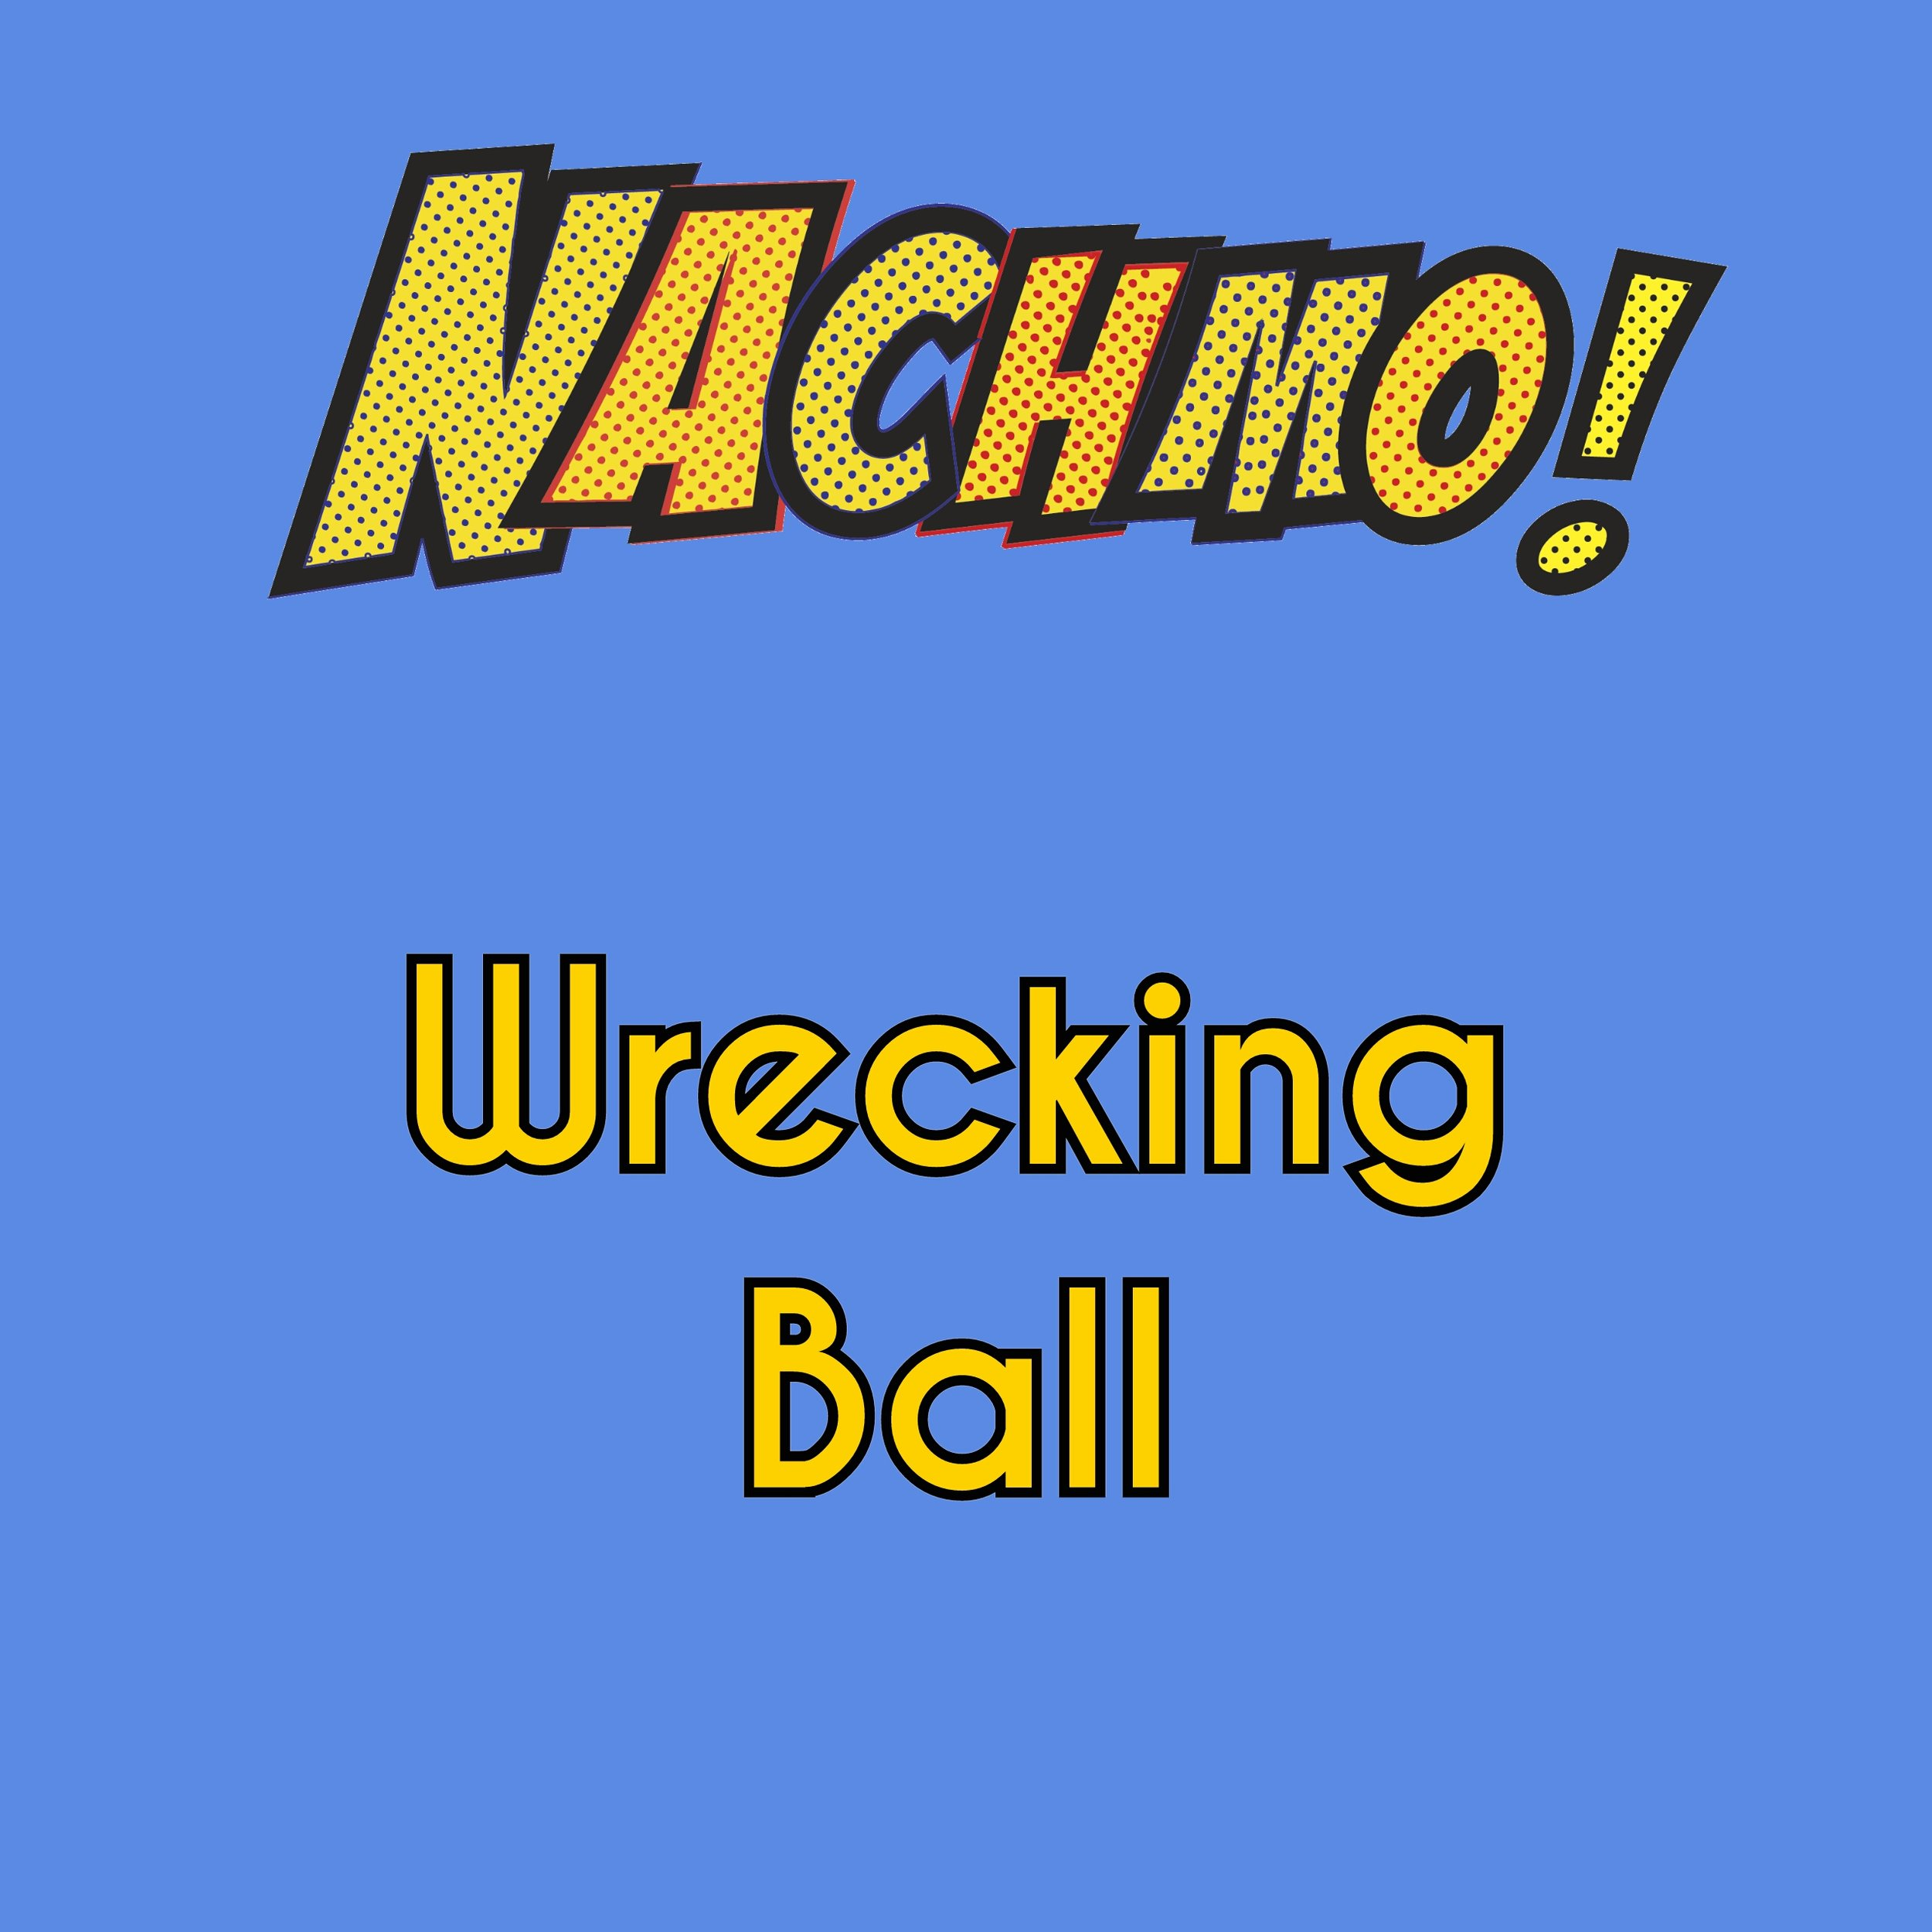 Jan 23: Wrecking Ball - Prompt: Pick one of the following options, and do your piece: Upside down / level change everything / in a chair / extreme tempo change.Plus: Invite people to a rehearsal and let them choose the wrecking ball. How would they like to see you do this piece? Remember, you don't have to keep any of the disruptive suggestions!Lens: Duplicate your film project and mess with it. Change the order, mess with speed, repeat and delete footage. Go back to your original footage and keep what your liked.